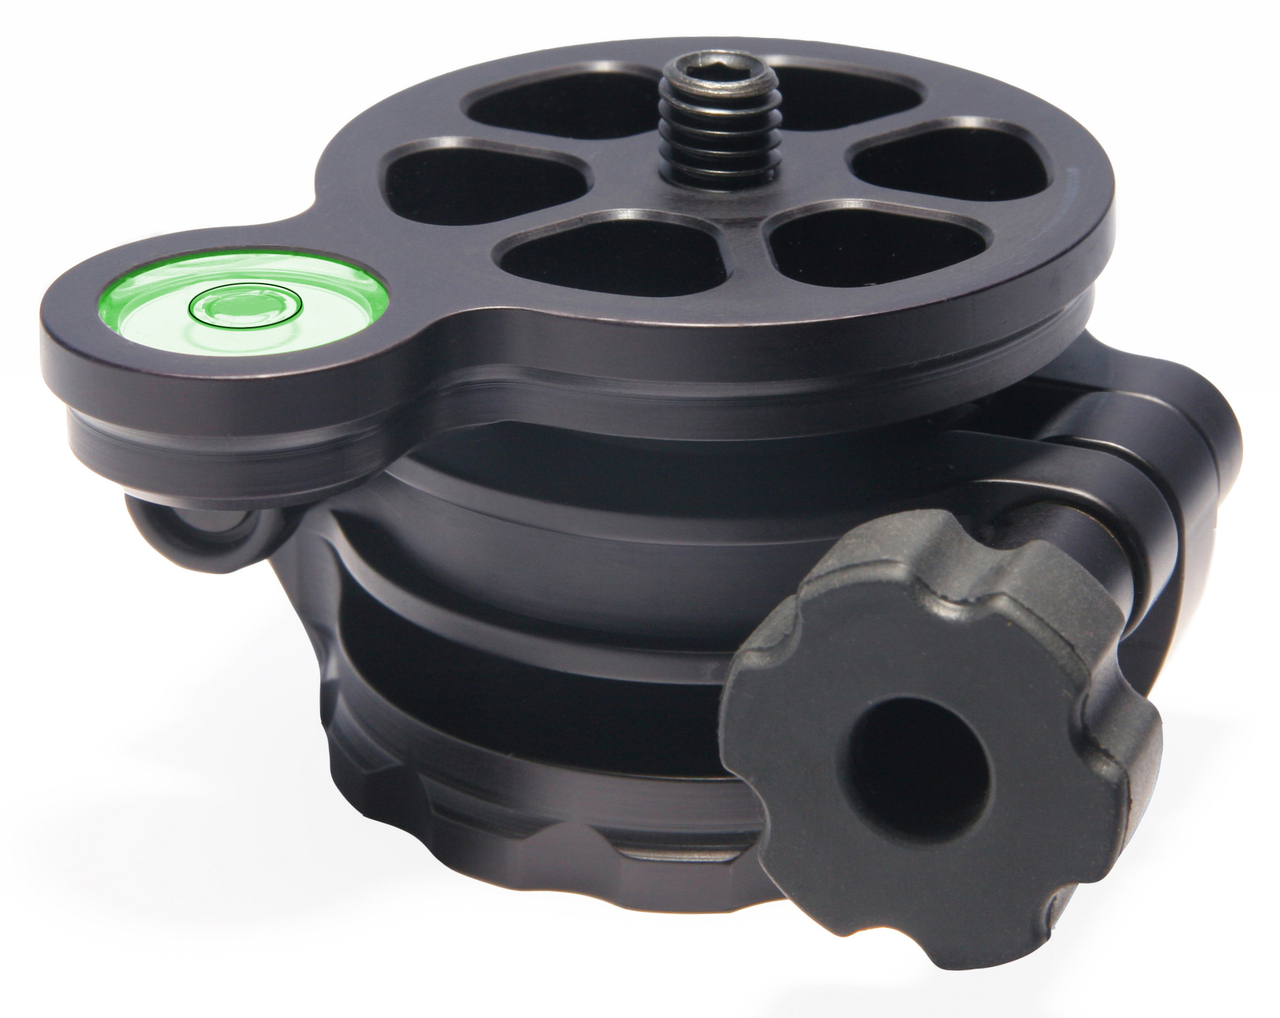 Acratech Panoramic Leveling Base